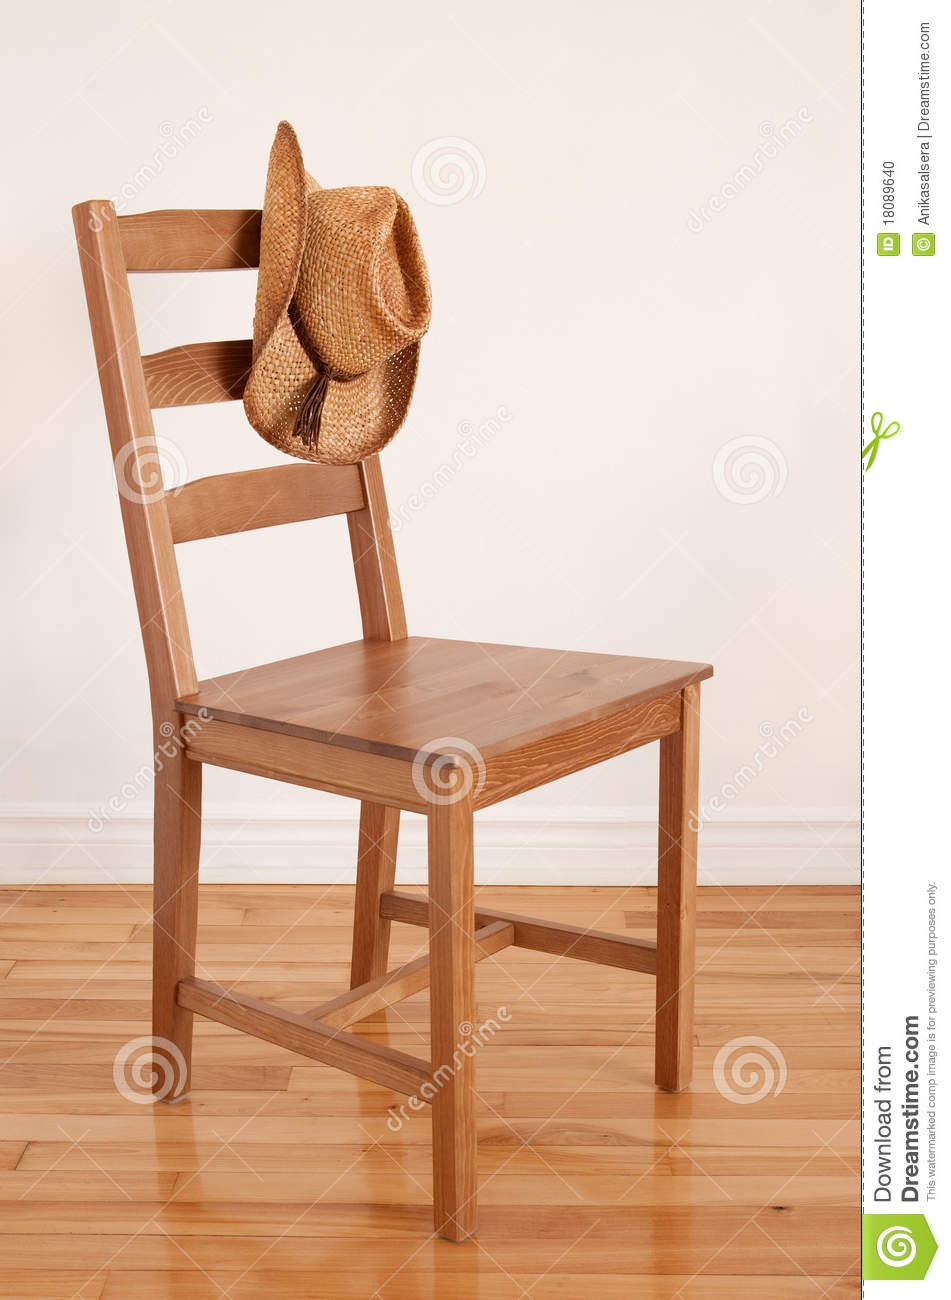 Cowboy Hat On A Wooden Chair Stock Photo